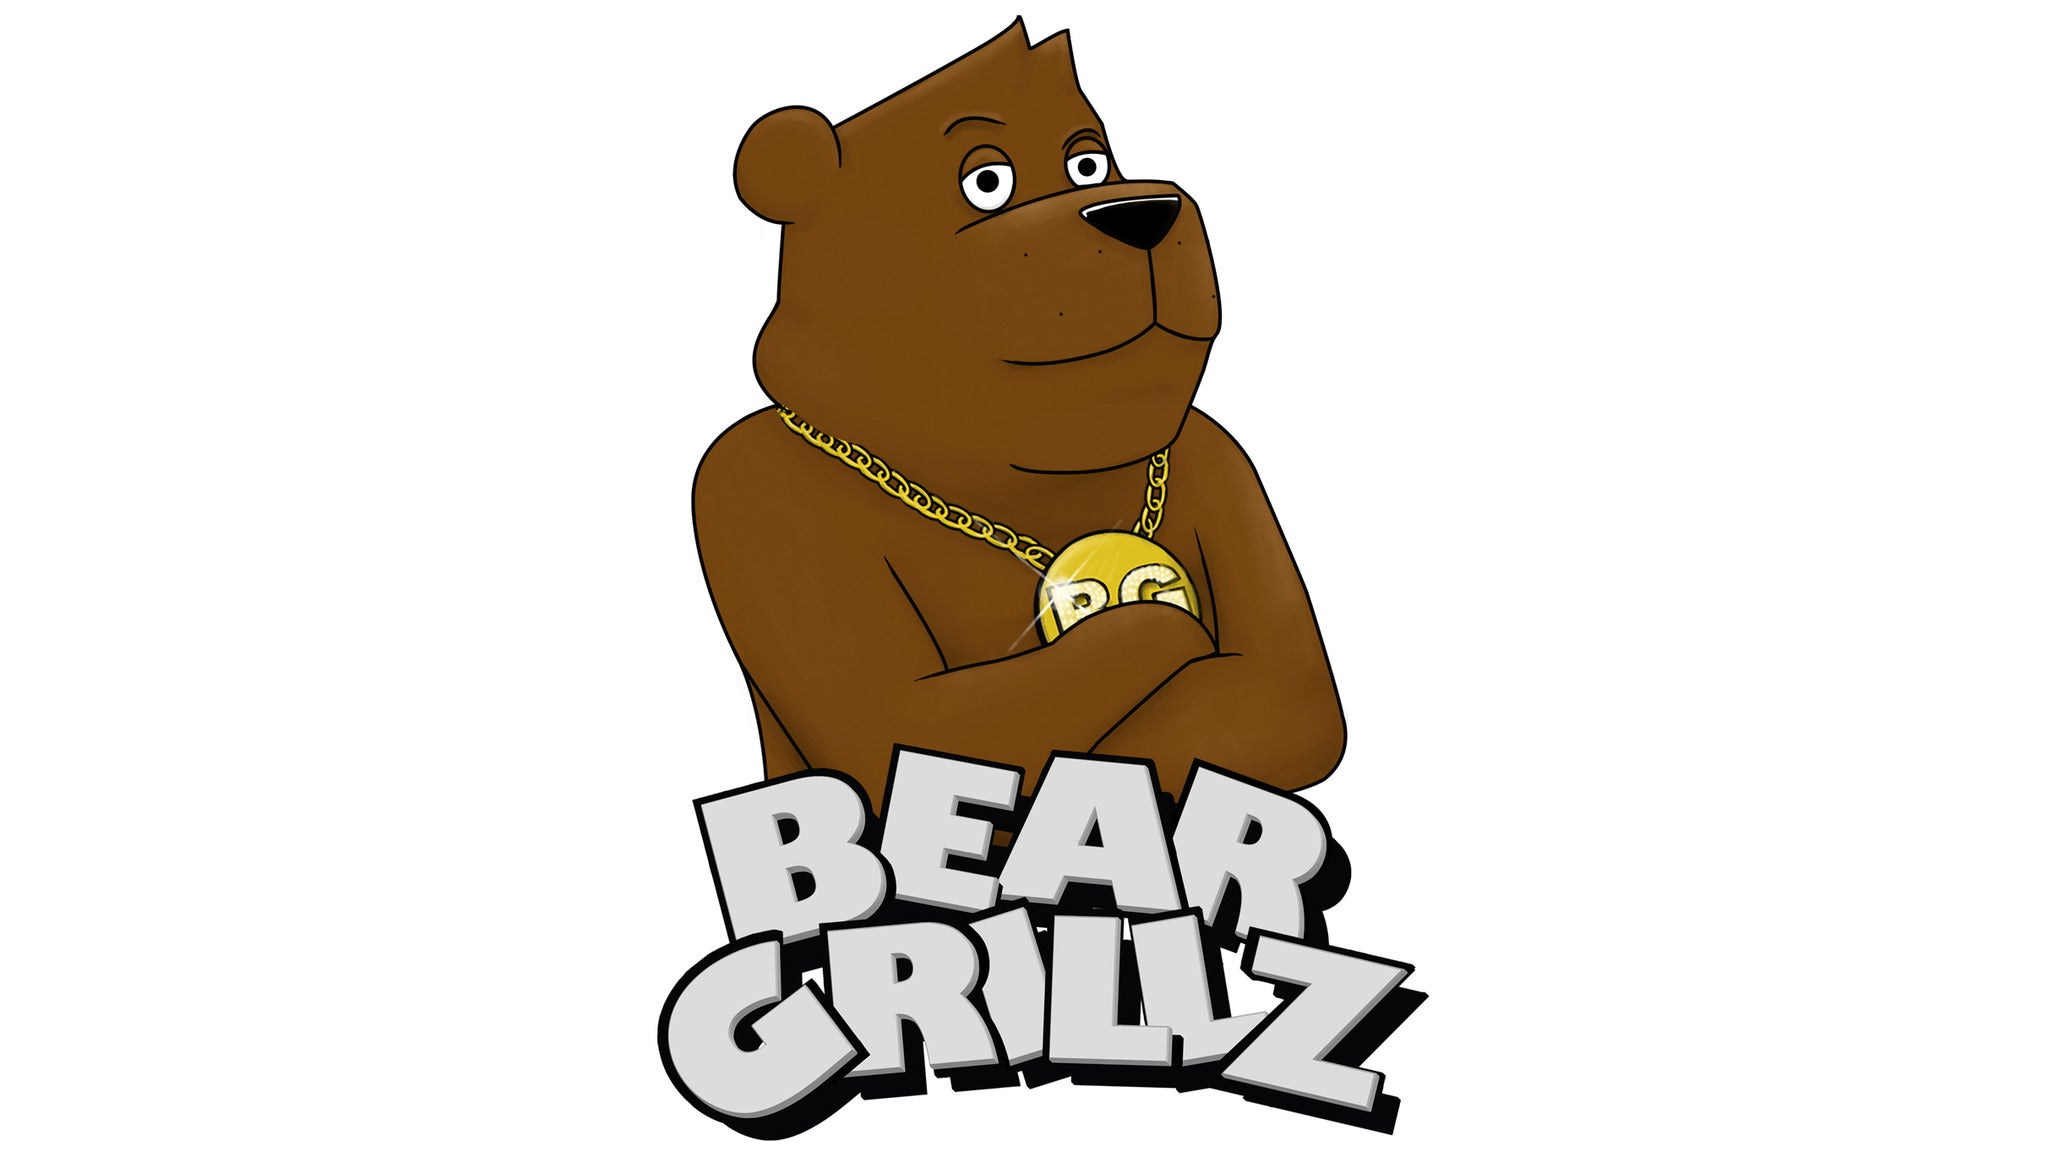 Bear Grillz at The Cowan